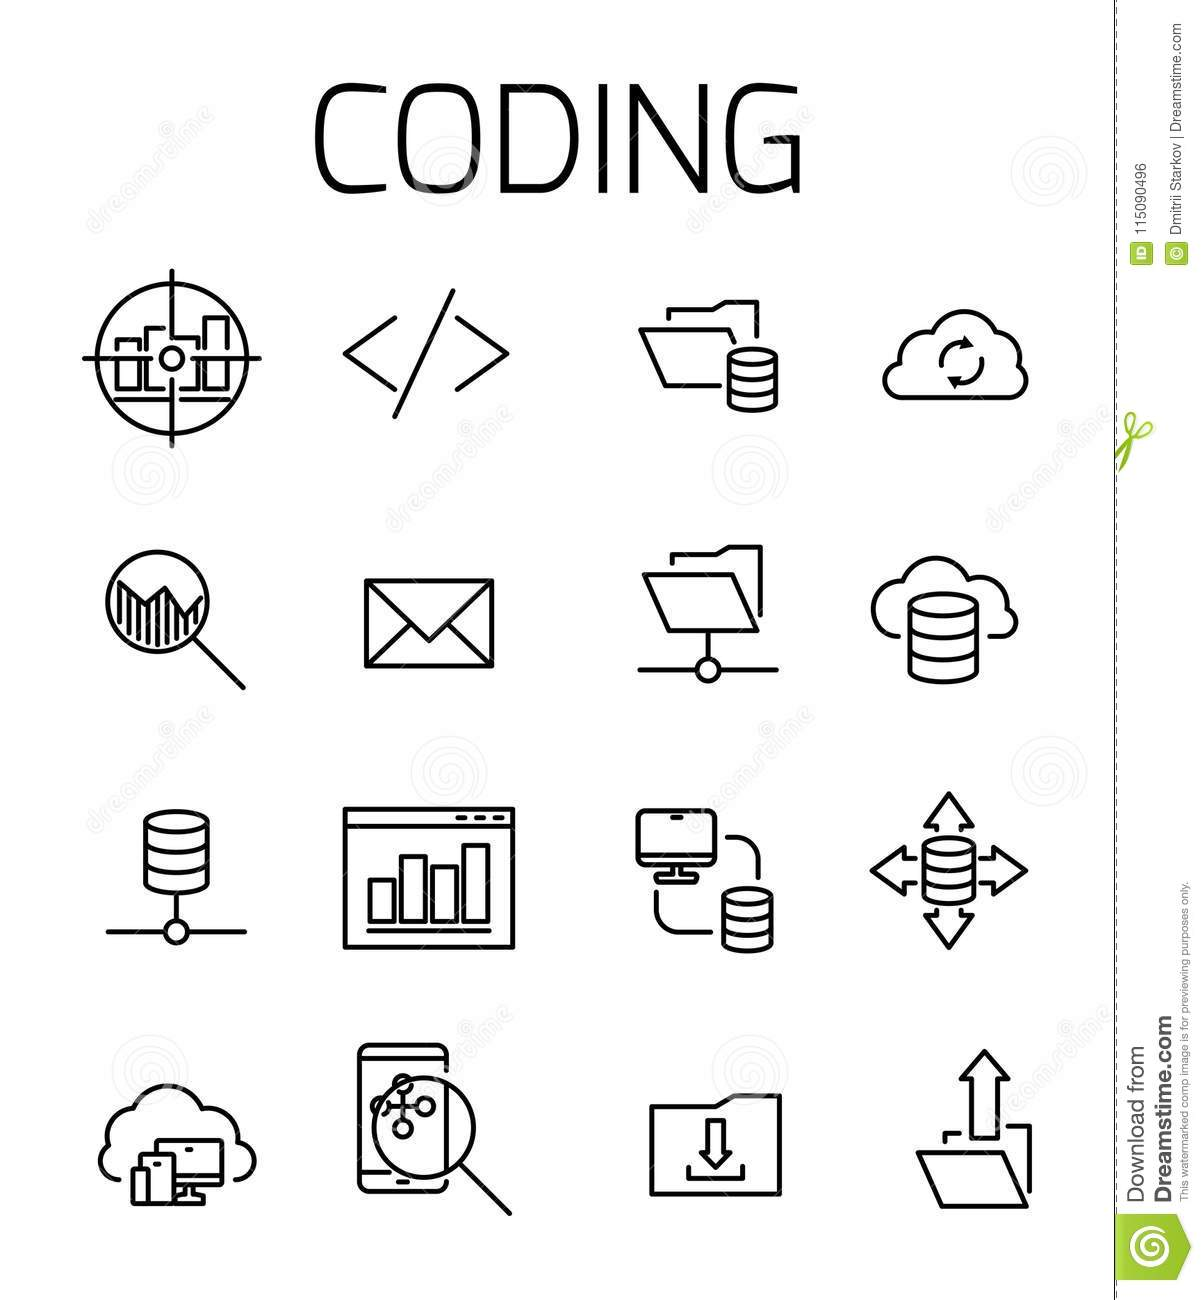 Coding Related Vector Icon Set. Stock Vector